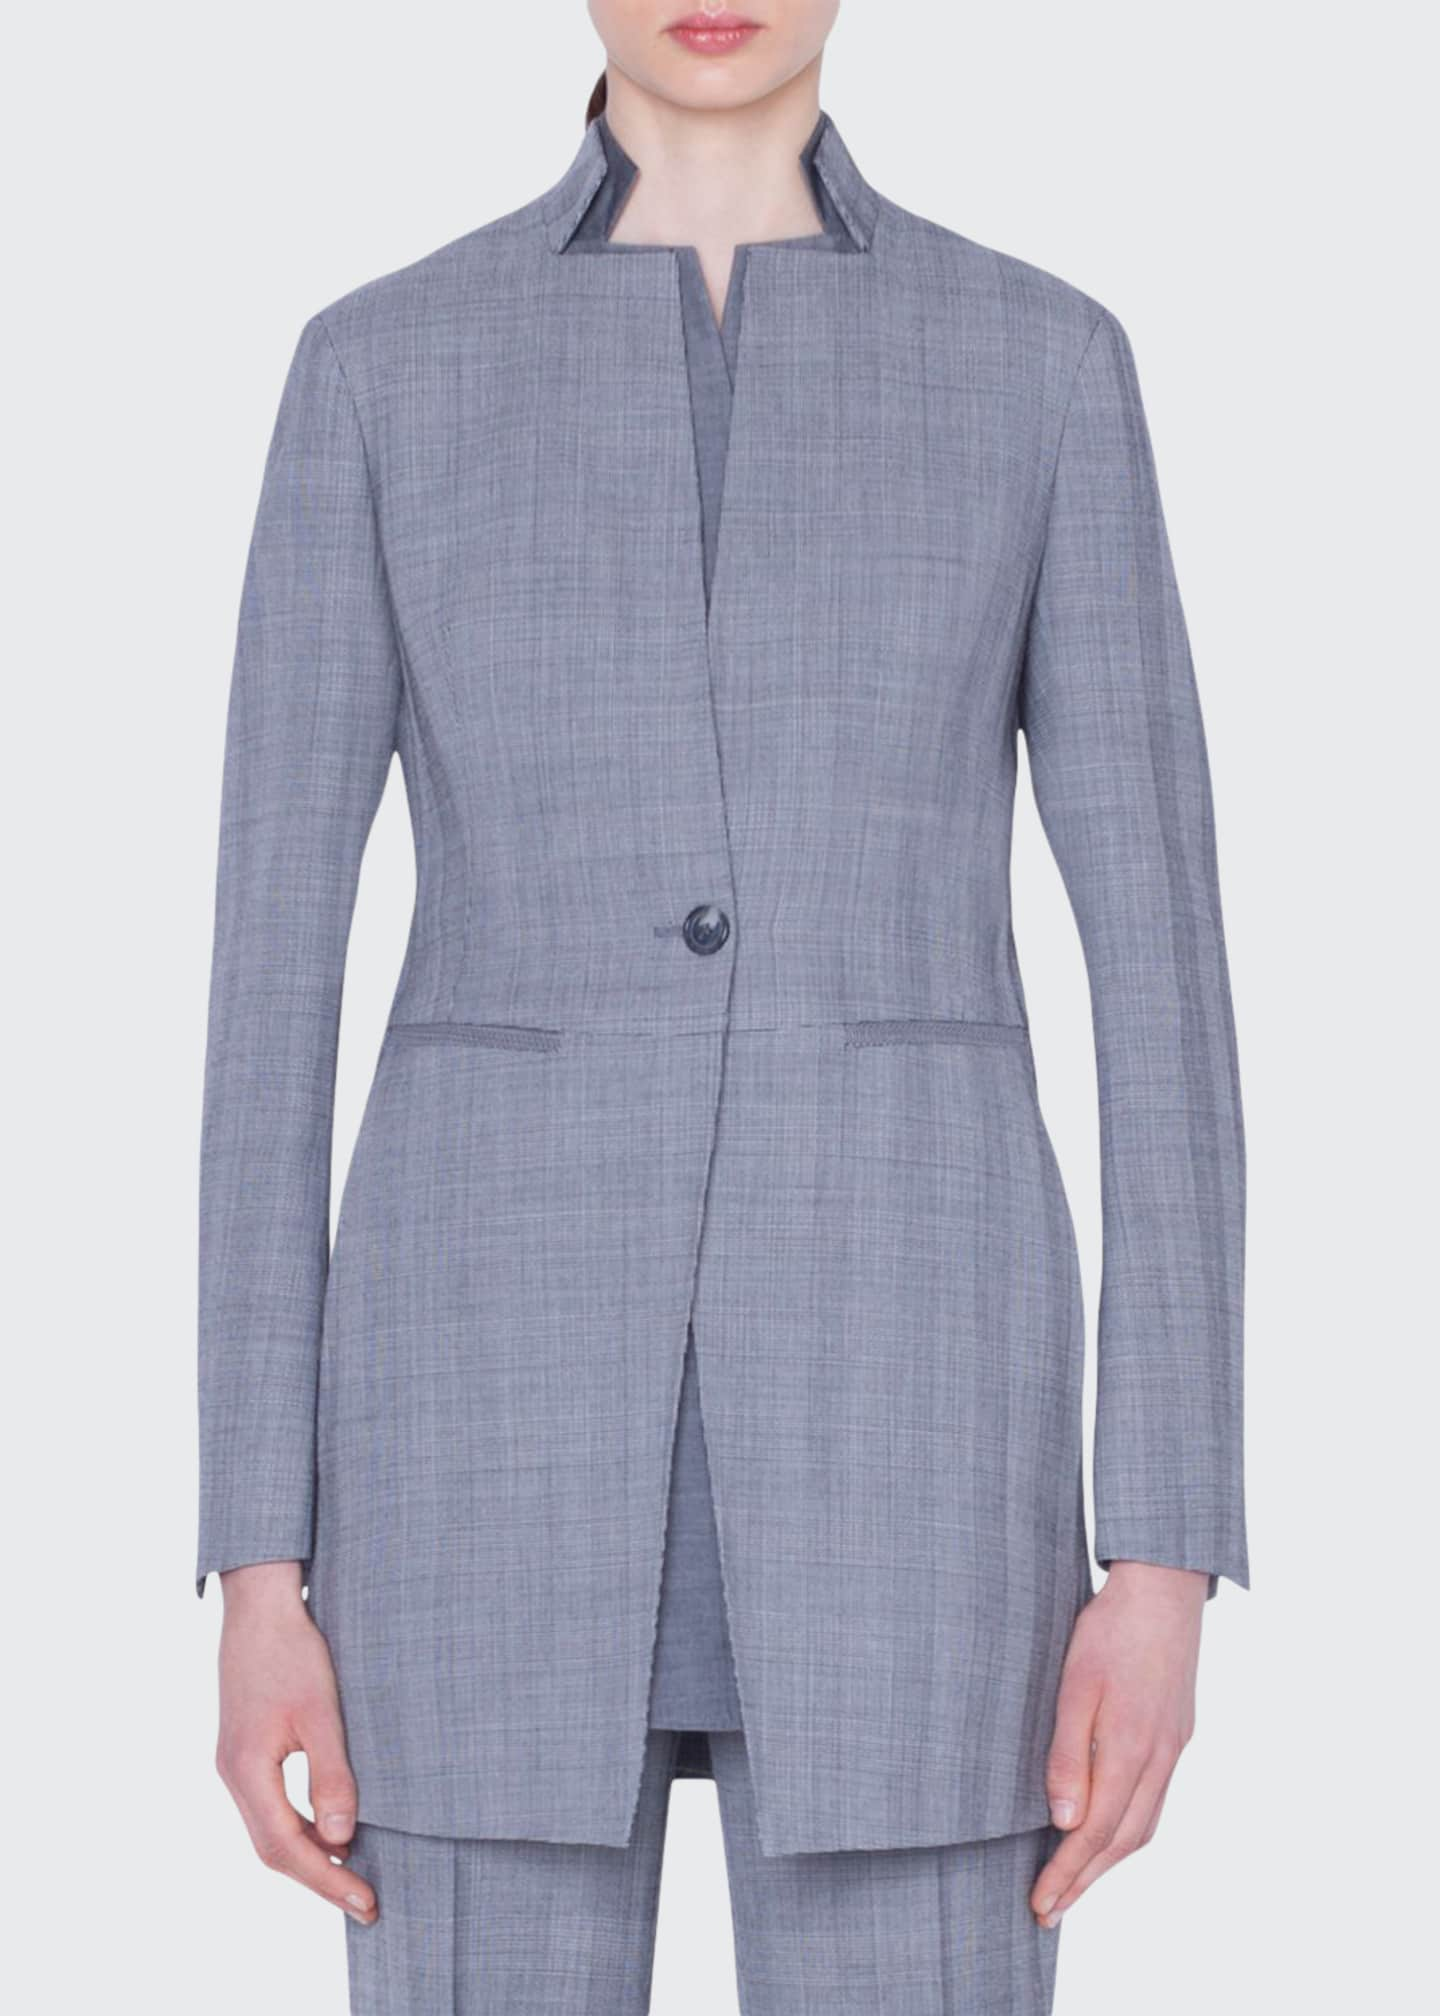 Akris Dalma Check Wool Jacket